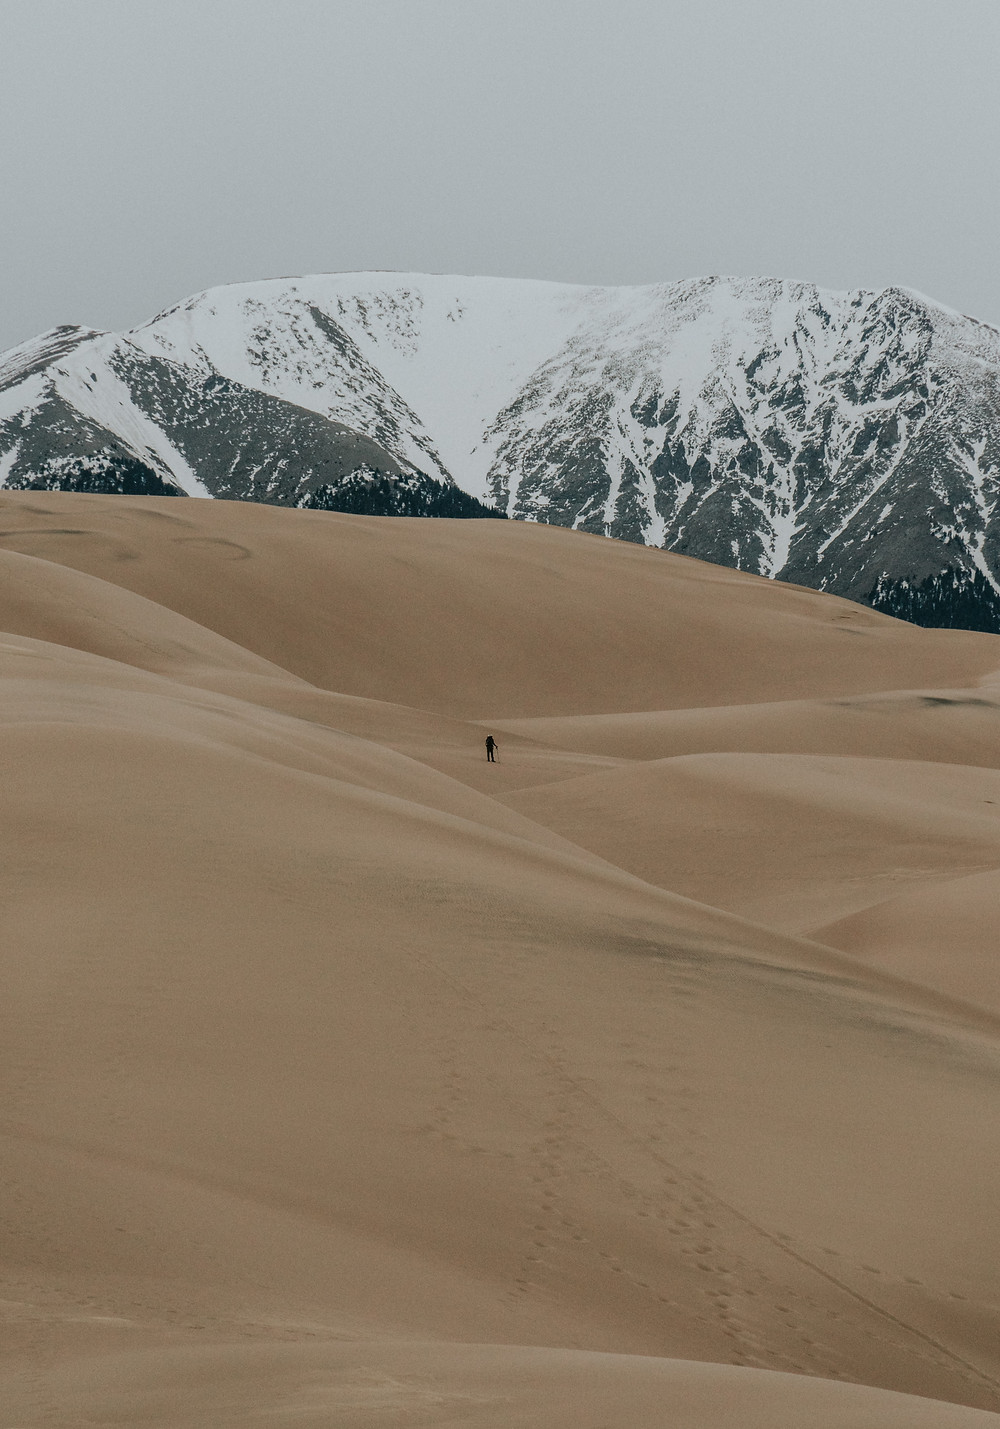 Person walks alone in the sand dunes of Colorado